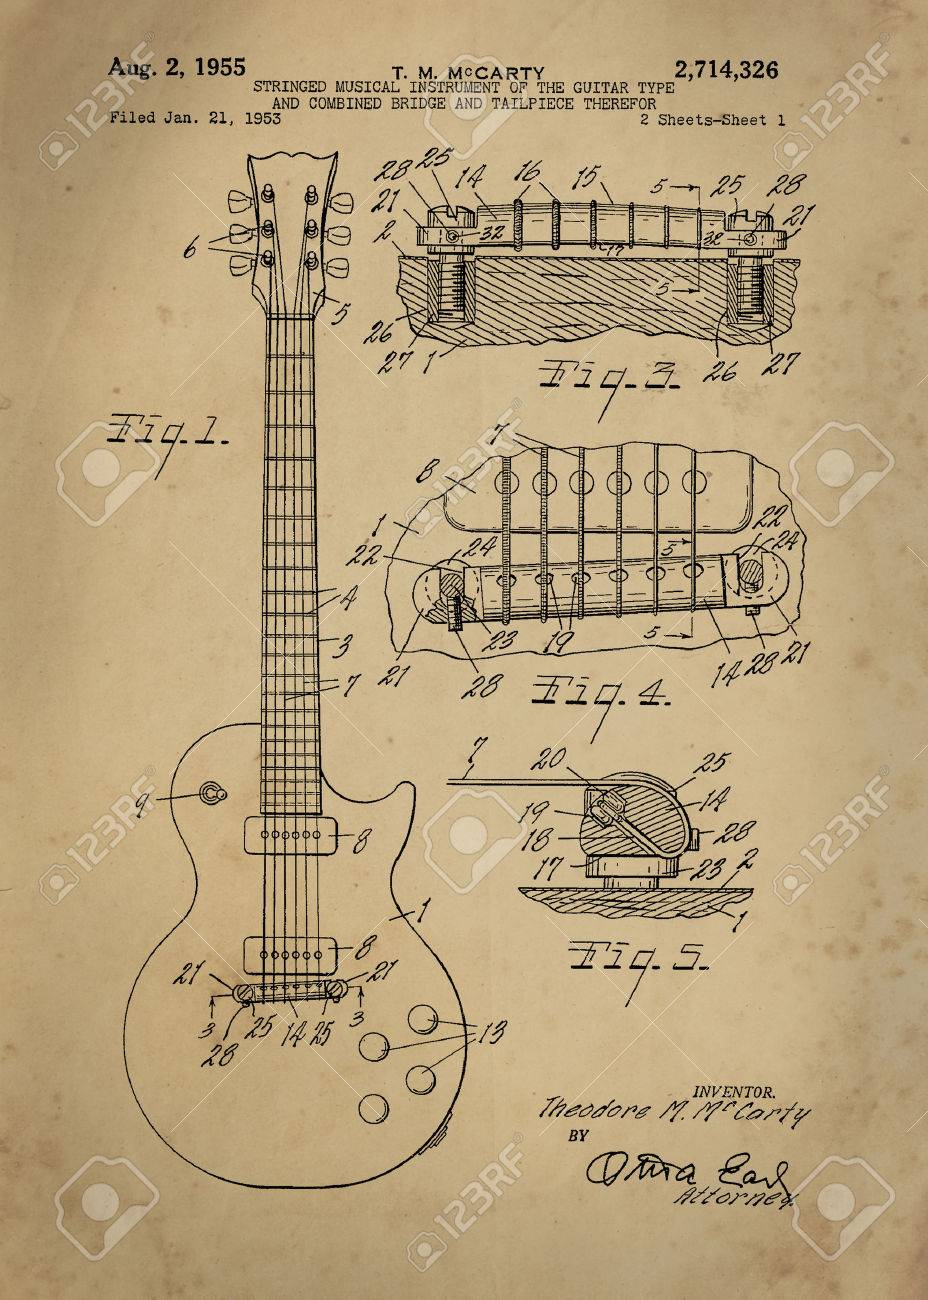 Old blueprint stock photos royalty free old blueprint images les paul guitar patent from 1955 inventor t m mccarty vintage patent artwork great presentation in both malvernweather Image collections